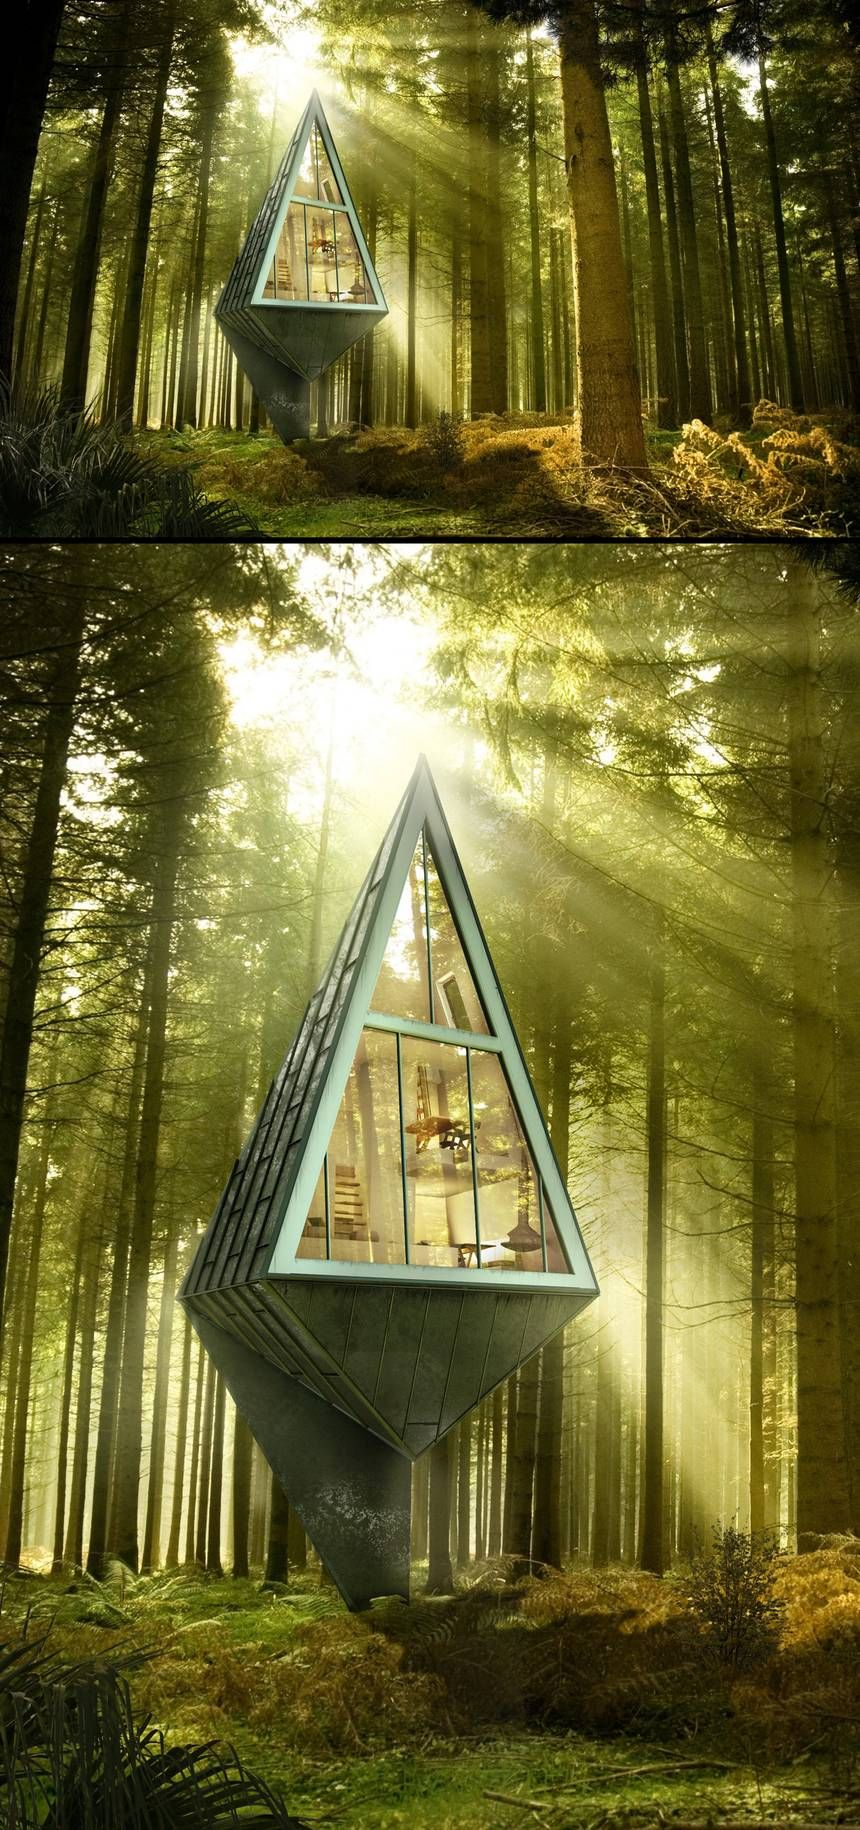 Luxury Tree Houses Designs Html on adult tree house designs, awesome tree house designs, luxury offices designs, luxury camping canvas tent, luxury home designs, luxury walk-in shower designs, luxury bathrooms designs, luxury apartments designs, 2 story tree house designs, custom tree house designs, single tree house designs, deck designs, luxury kitchens designs, luxury swimming pools designs, diy tree house designs, contemporary tree house designs, luxury house plans designs, two tree house designs, ultimate tree house designs, luxury furniture designs,